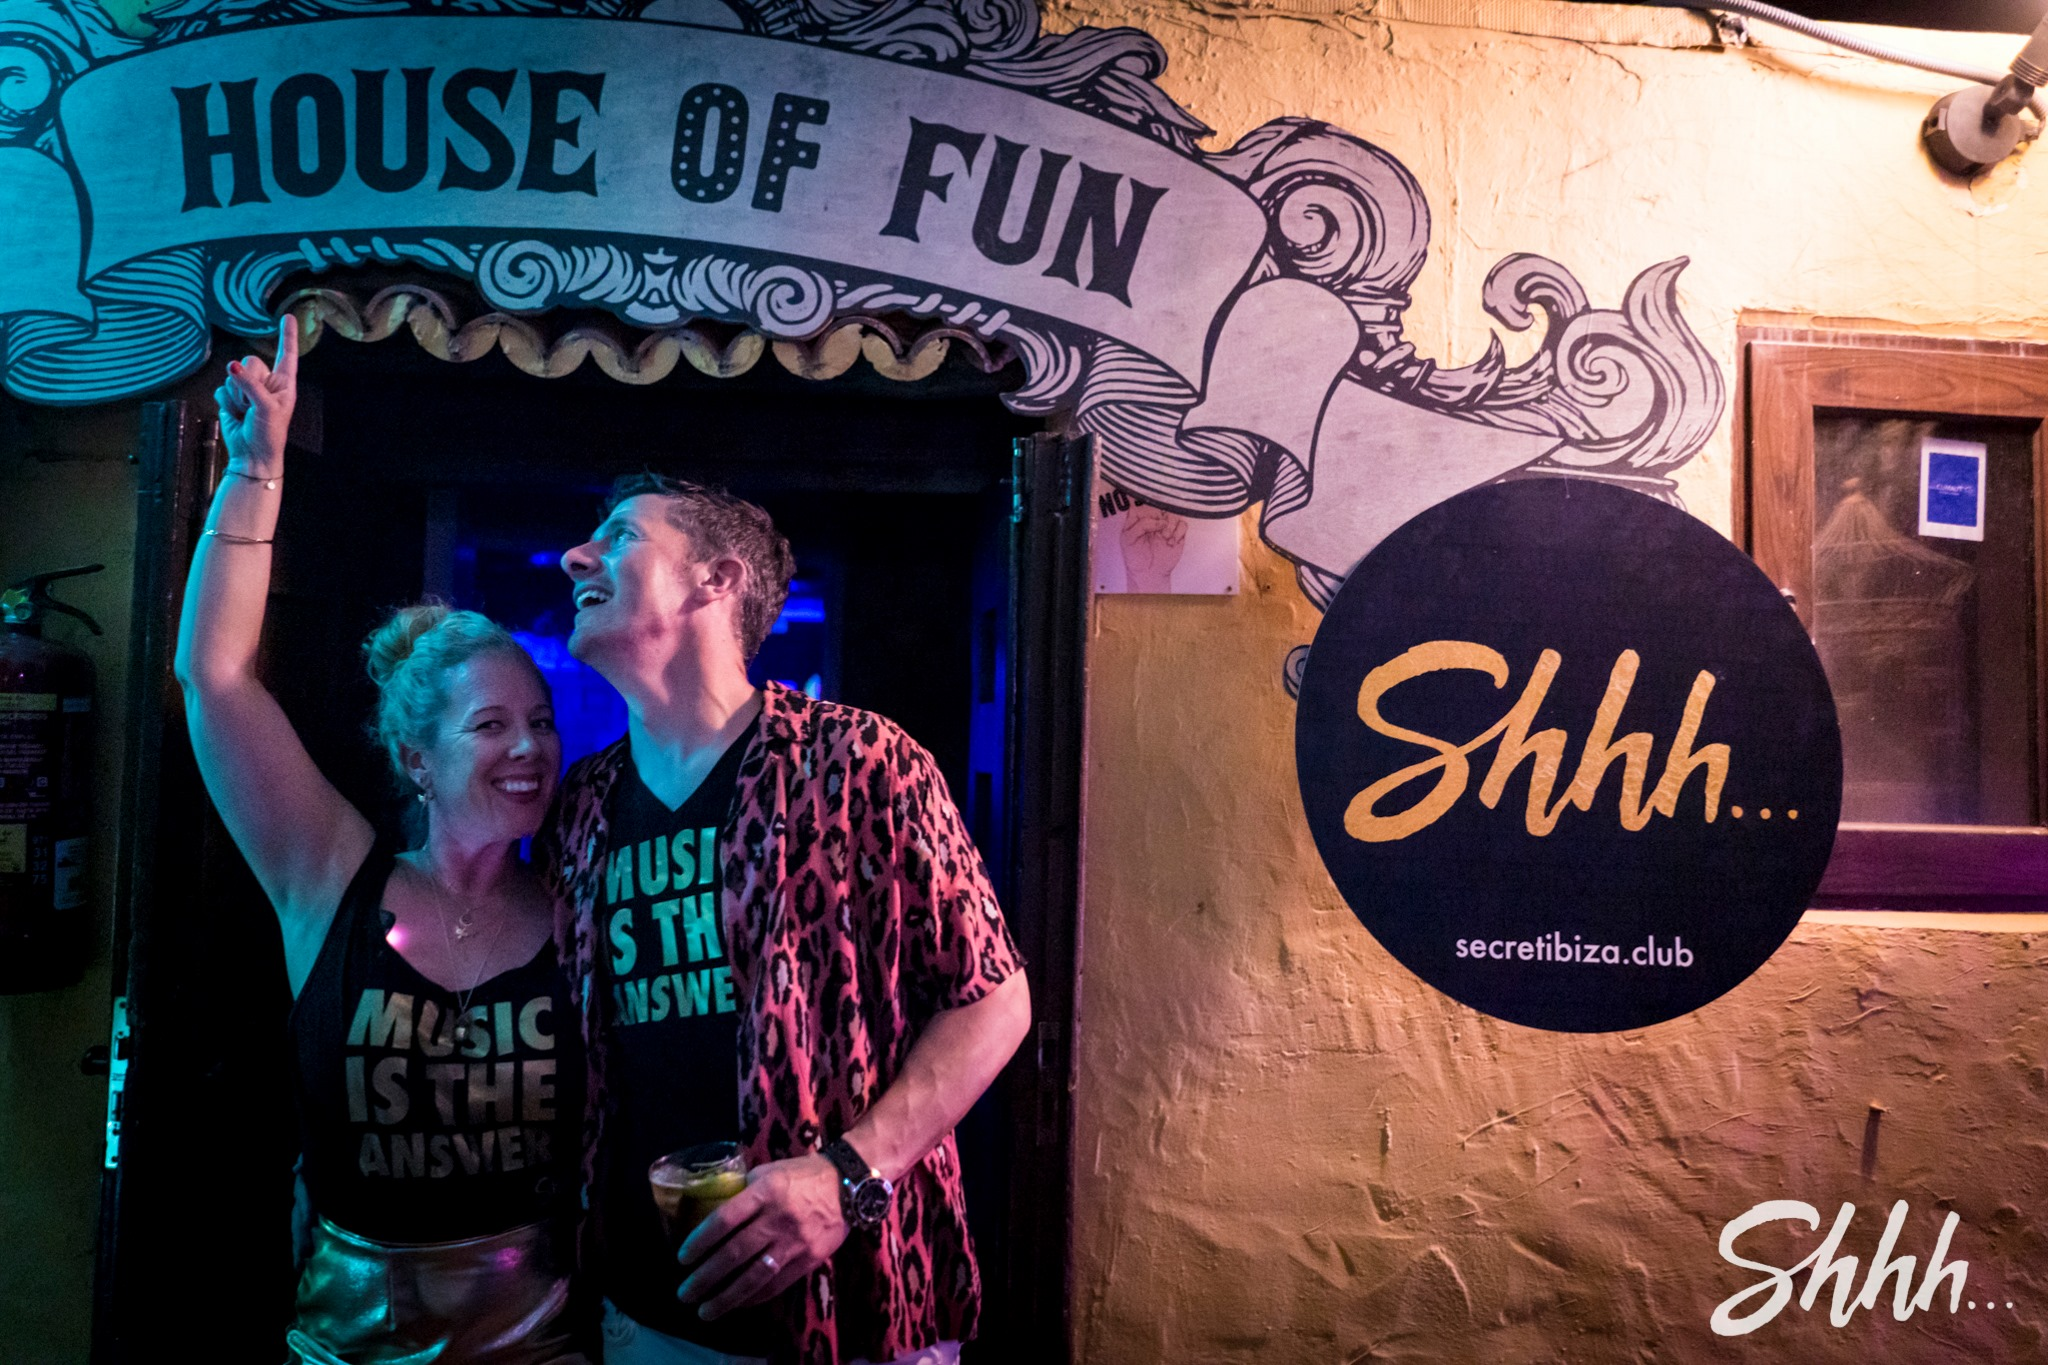 'Welcome to the house of fun' Shhh... promoters and power couple Justin and Sara Douglas